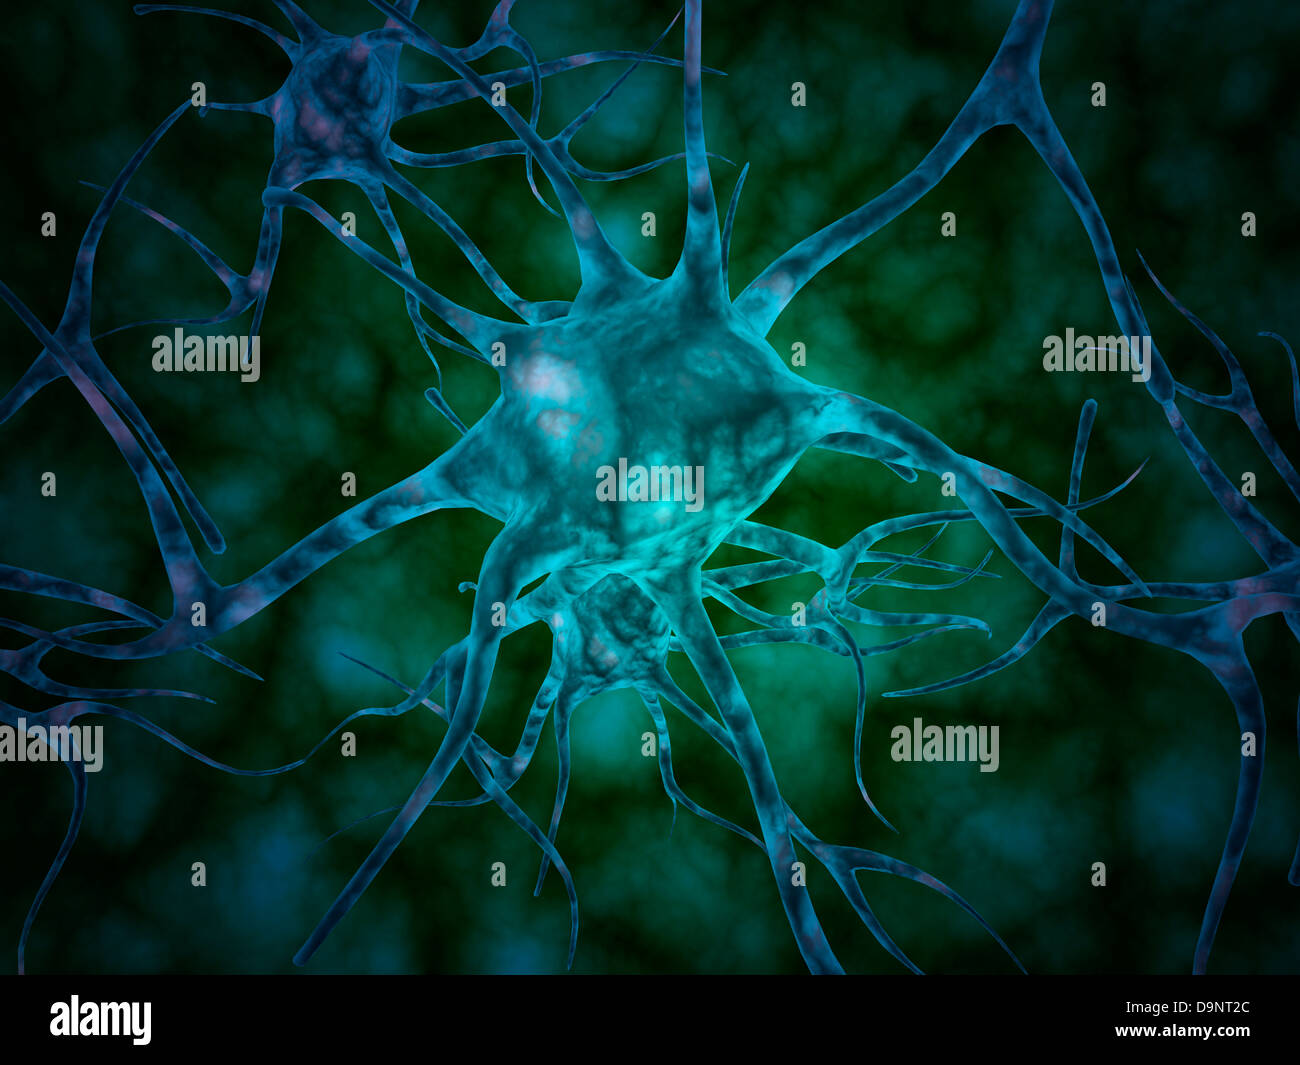 Microscopic view of multiple nerve cells, known as neurons. - Stock Image